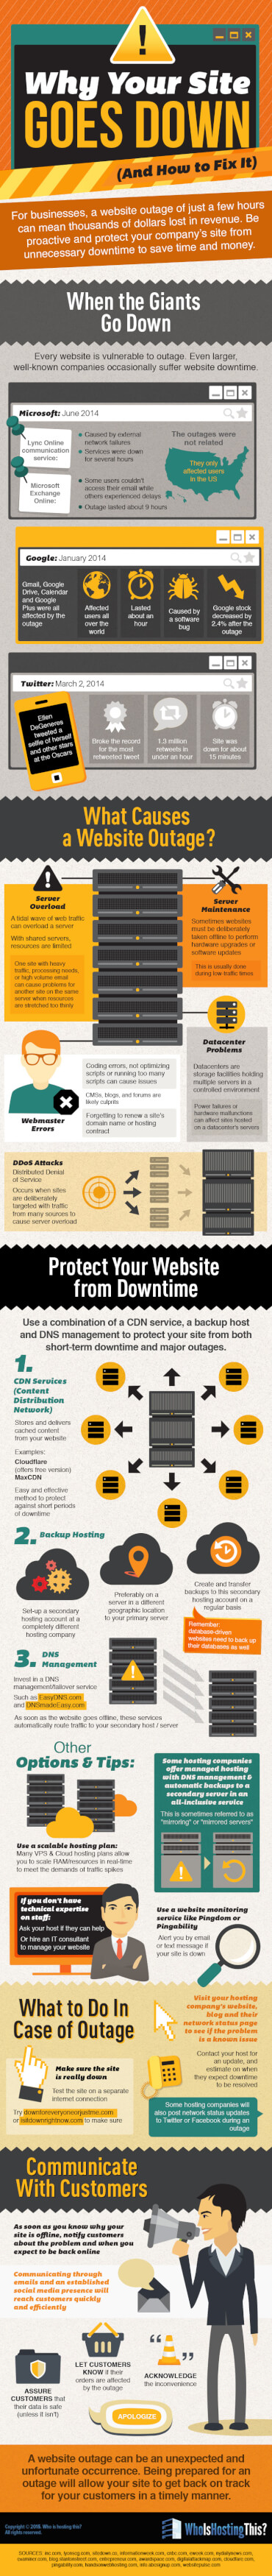 Why your website goes down and how to fix it 2